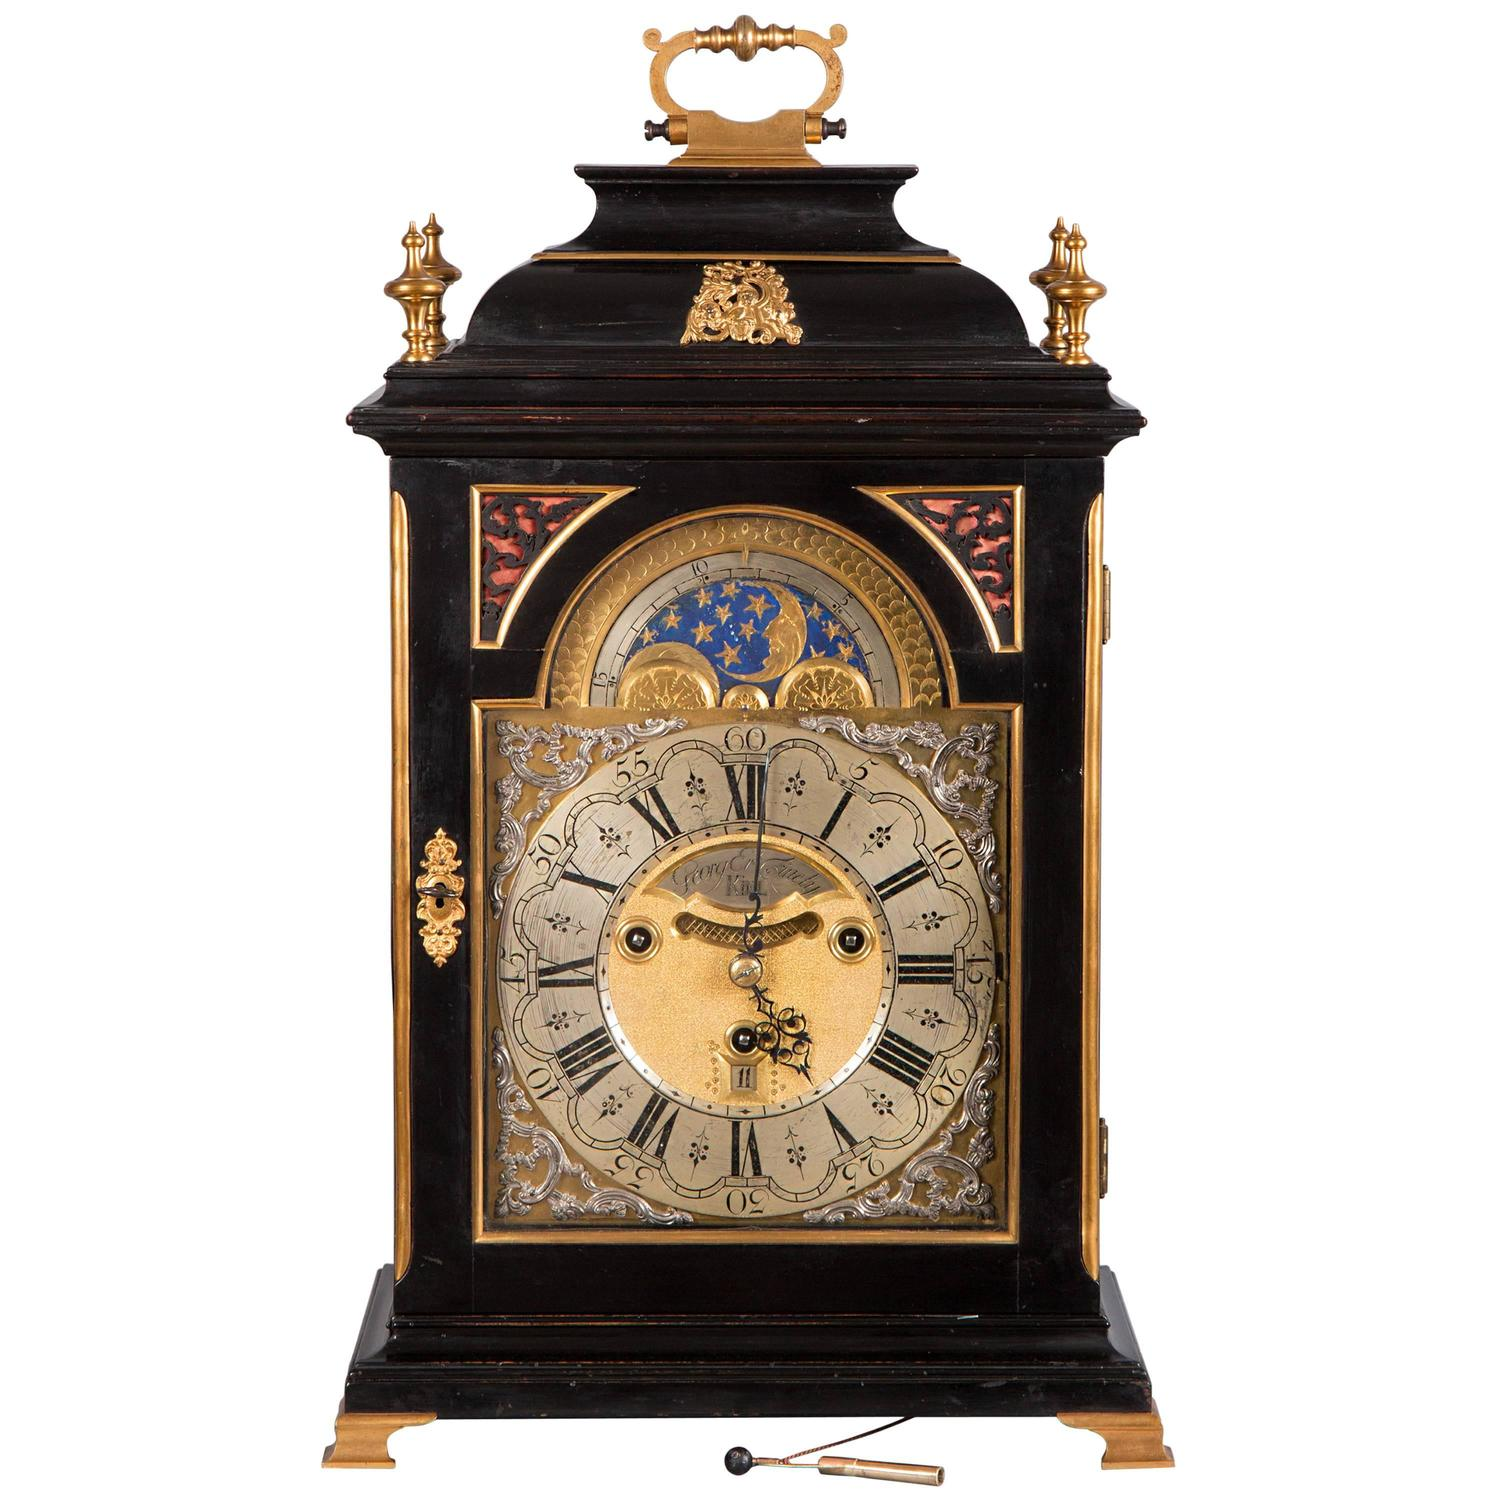 baroque mantel clock with chimes by georg erh finely